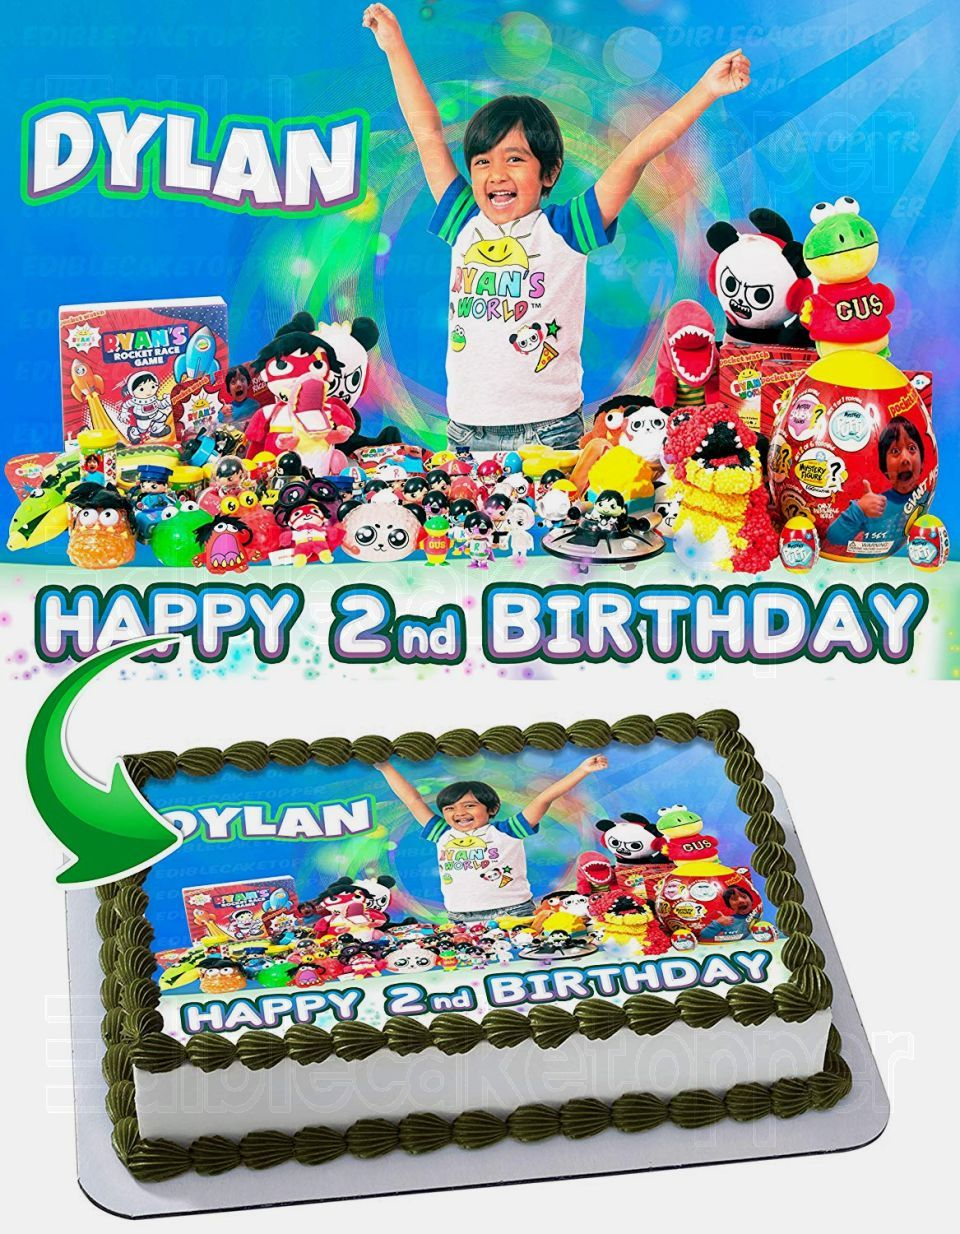 Remarkable Ryan Toysreview Edible Image Cake Topper Personalized Birthday Personalised Birthday Cards Petedlily Jamesorg